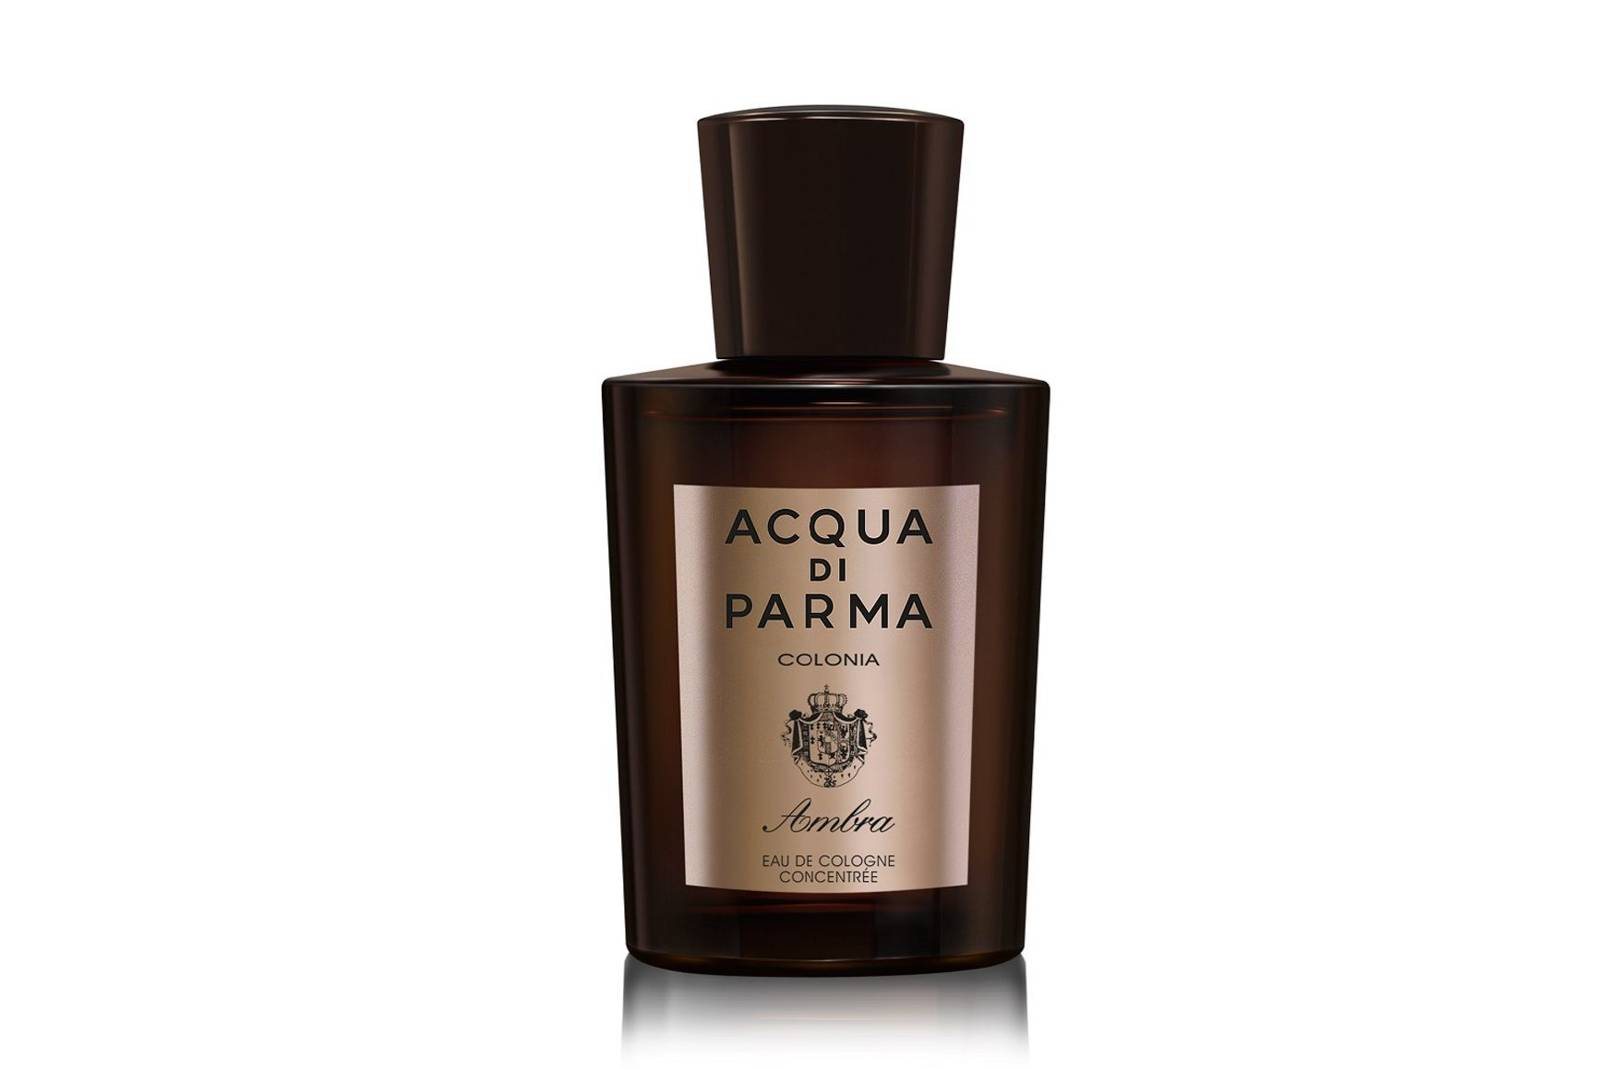 Fragrance Of The Week: Acqua Di Parma Colonia Quercia Fragrance Of The Week: Acqua Di Parma Colonia Quercia new images